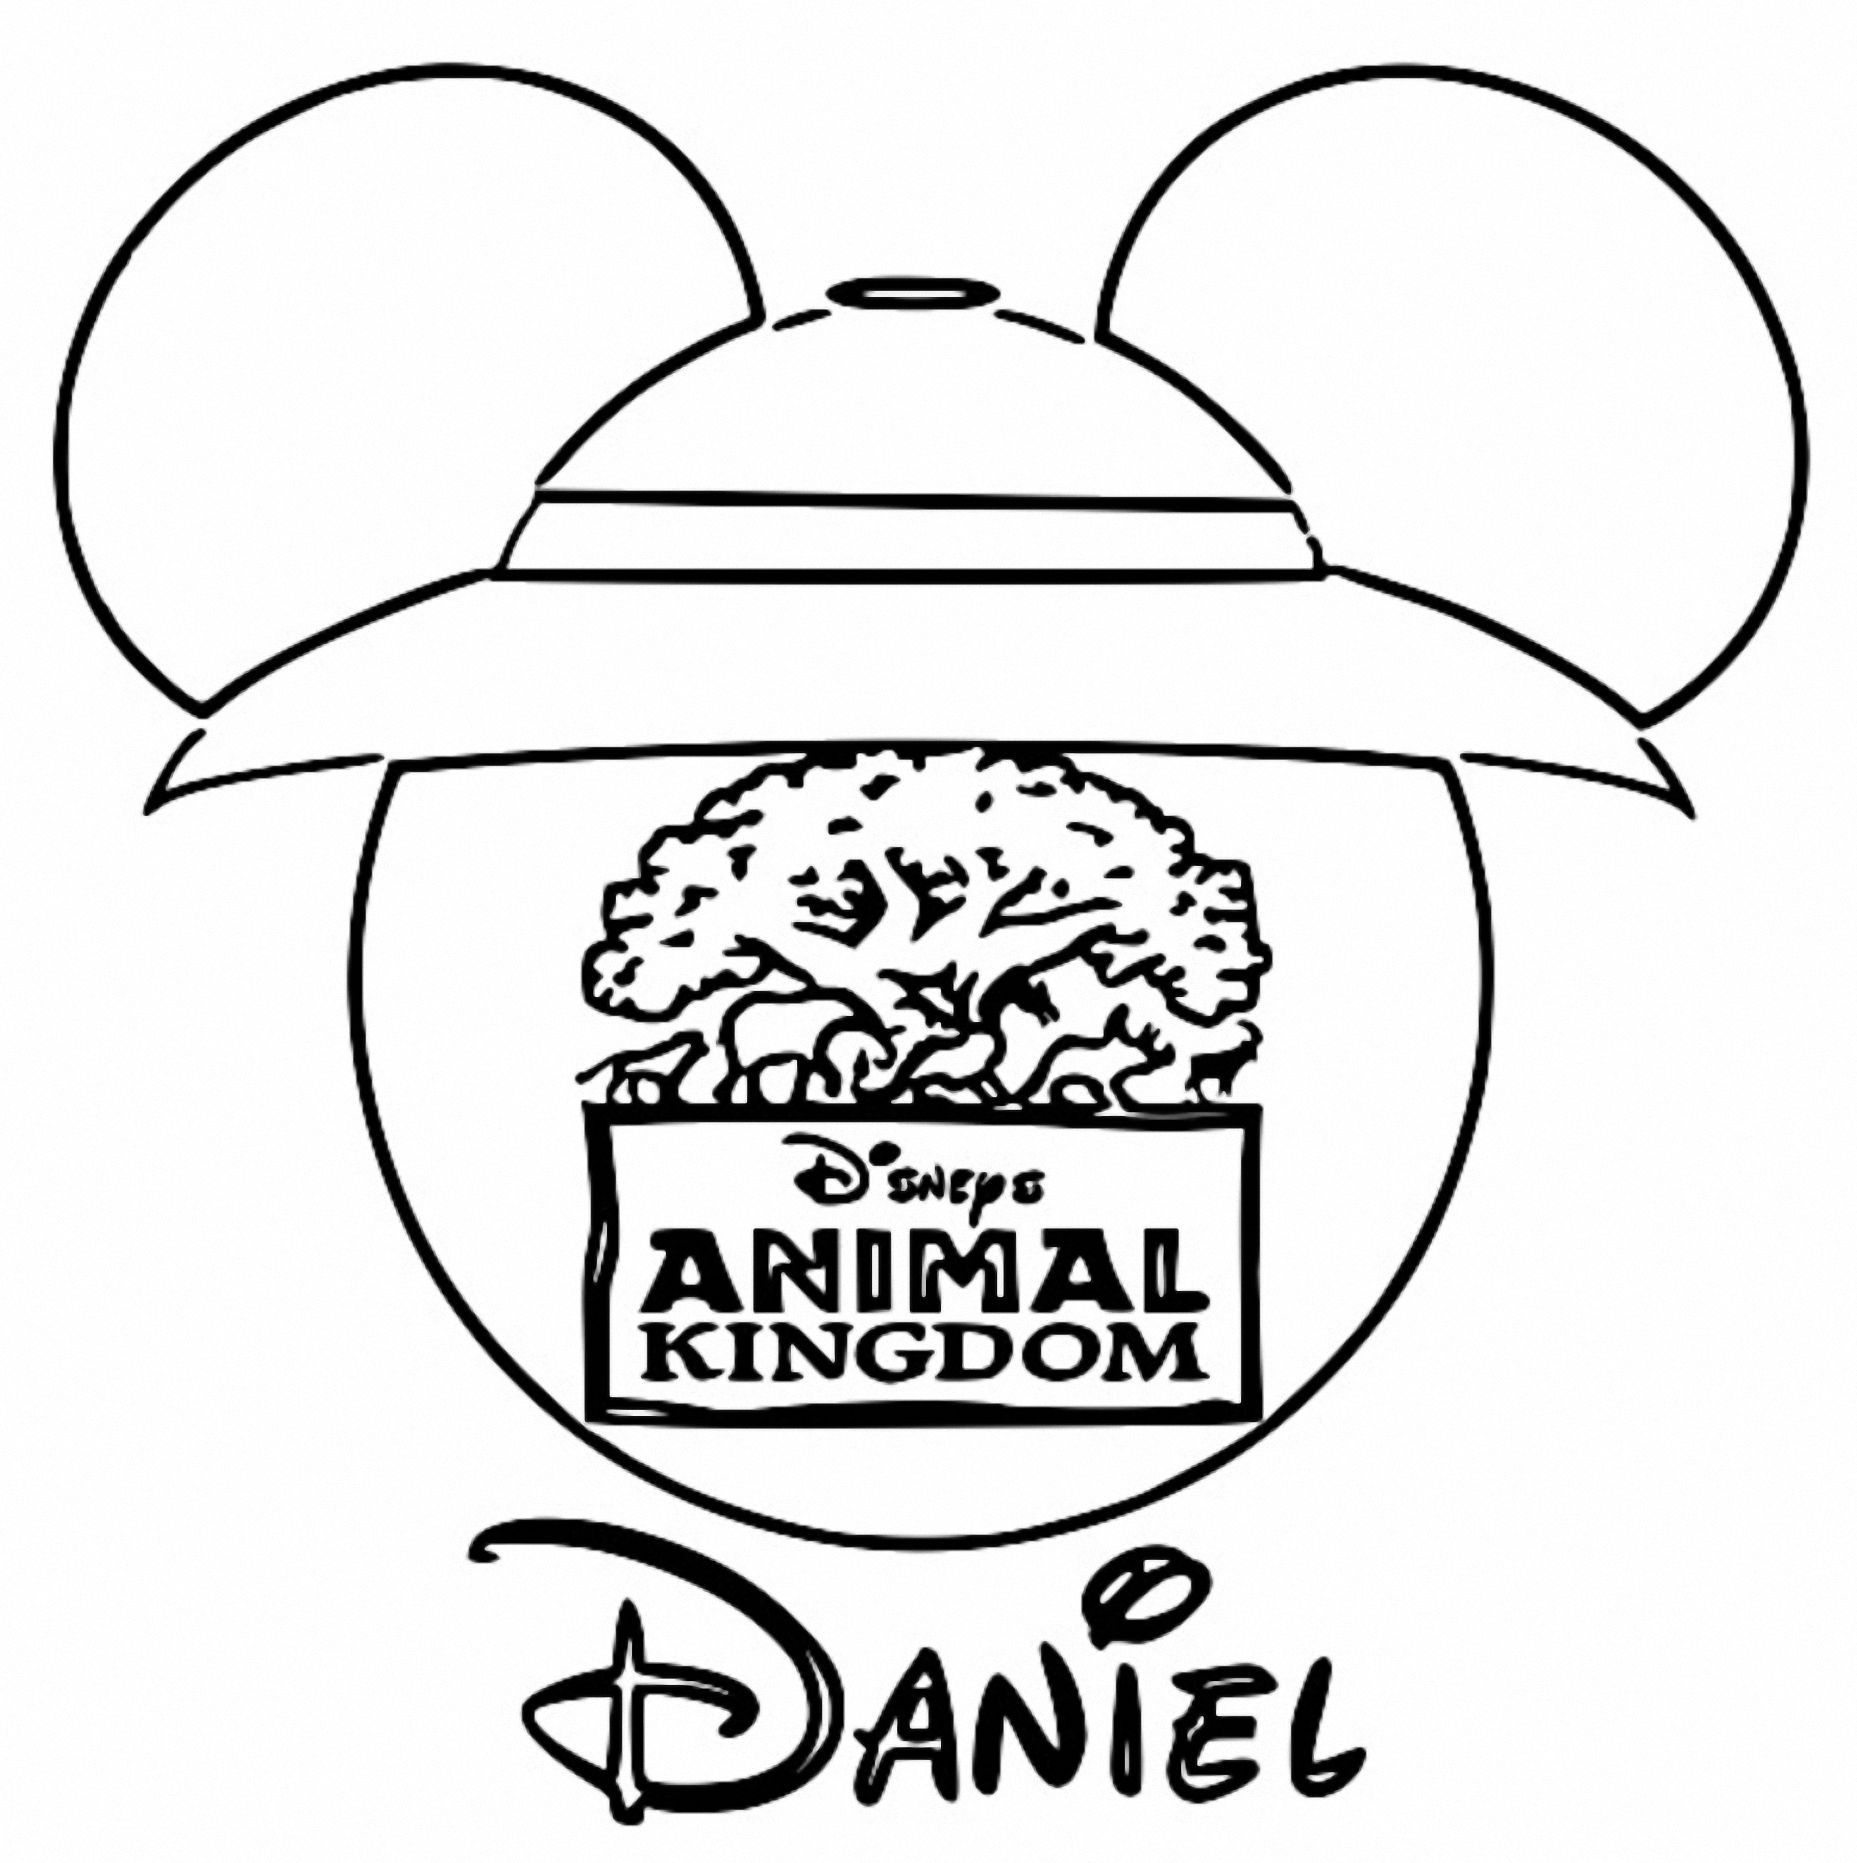 Animal kingdom mickey face silhouette coloring page wecoloringpage